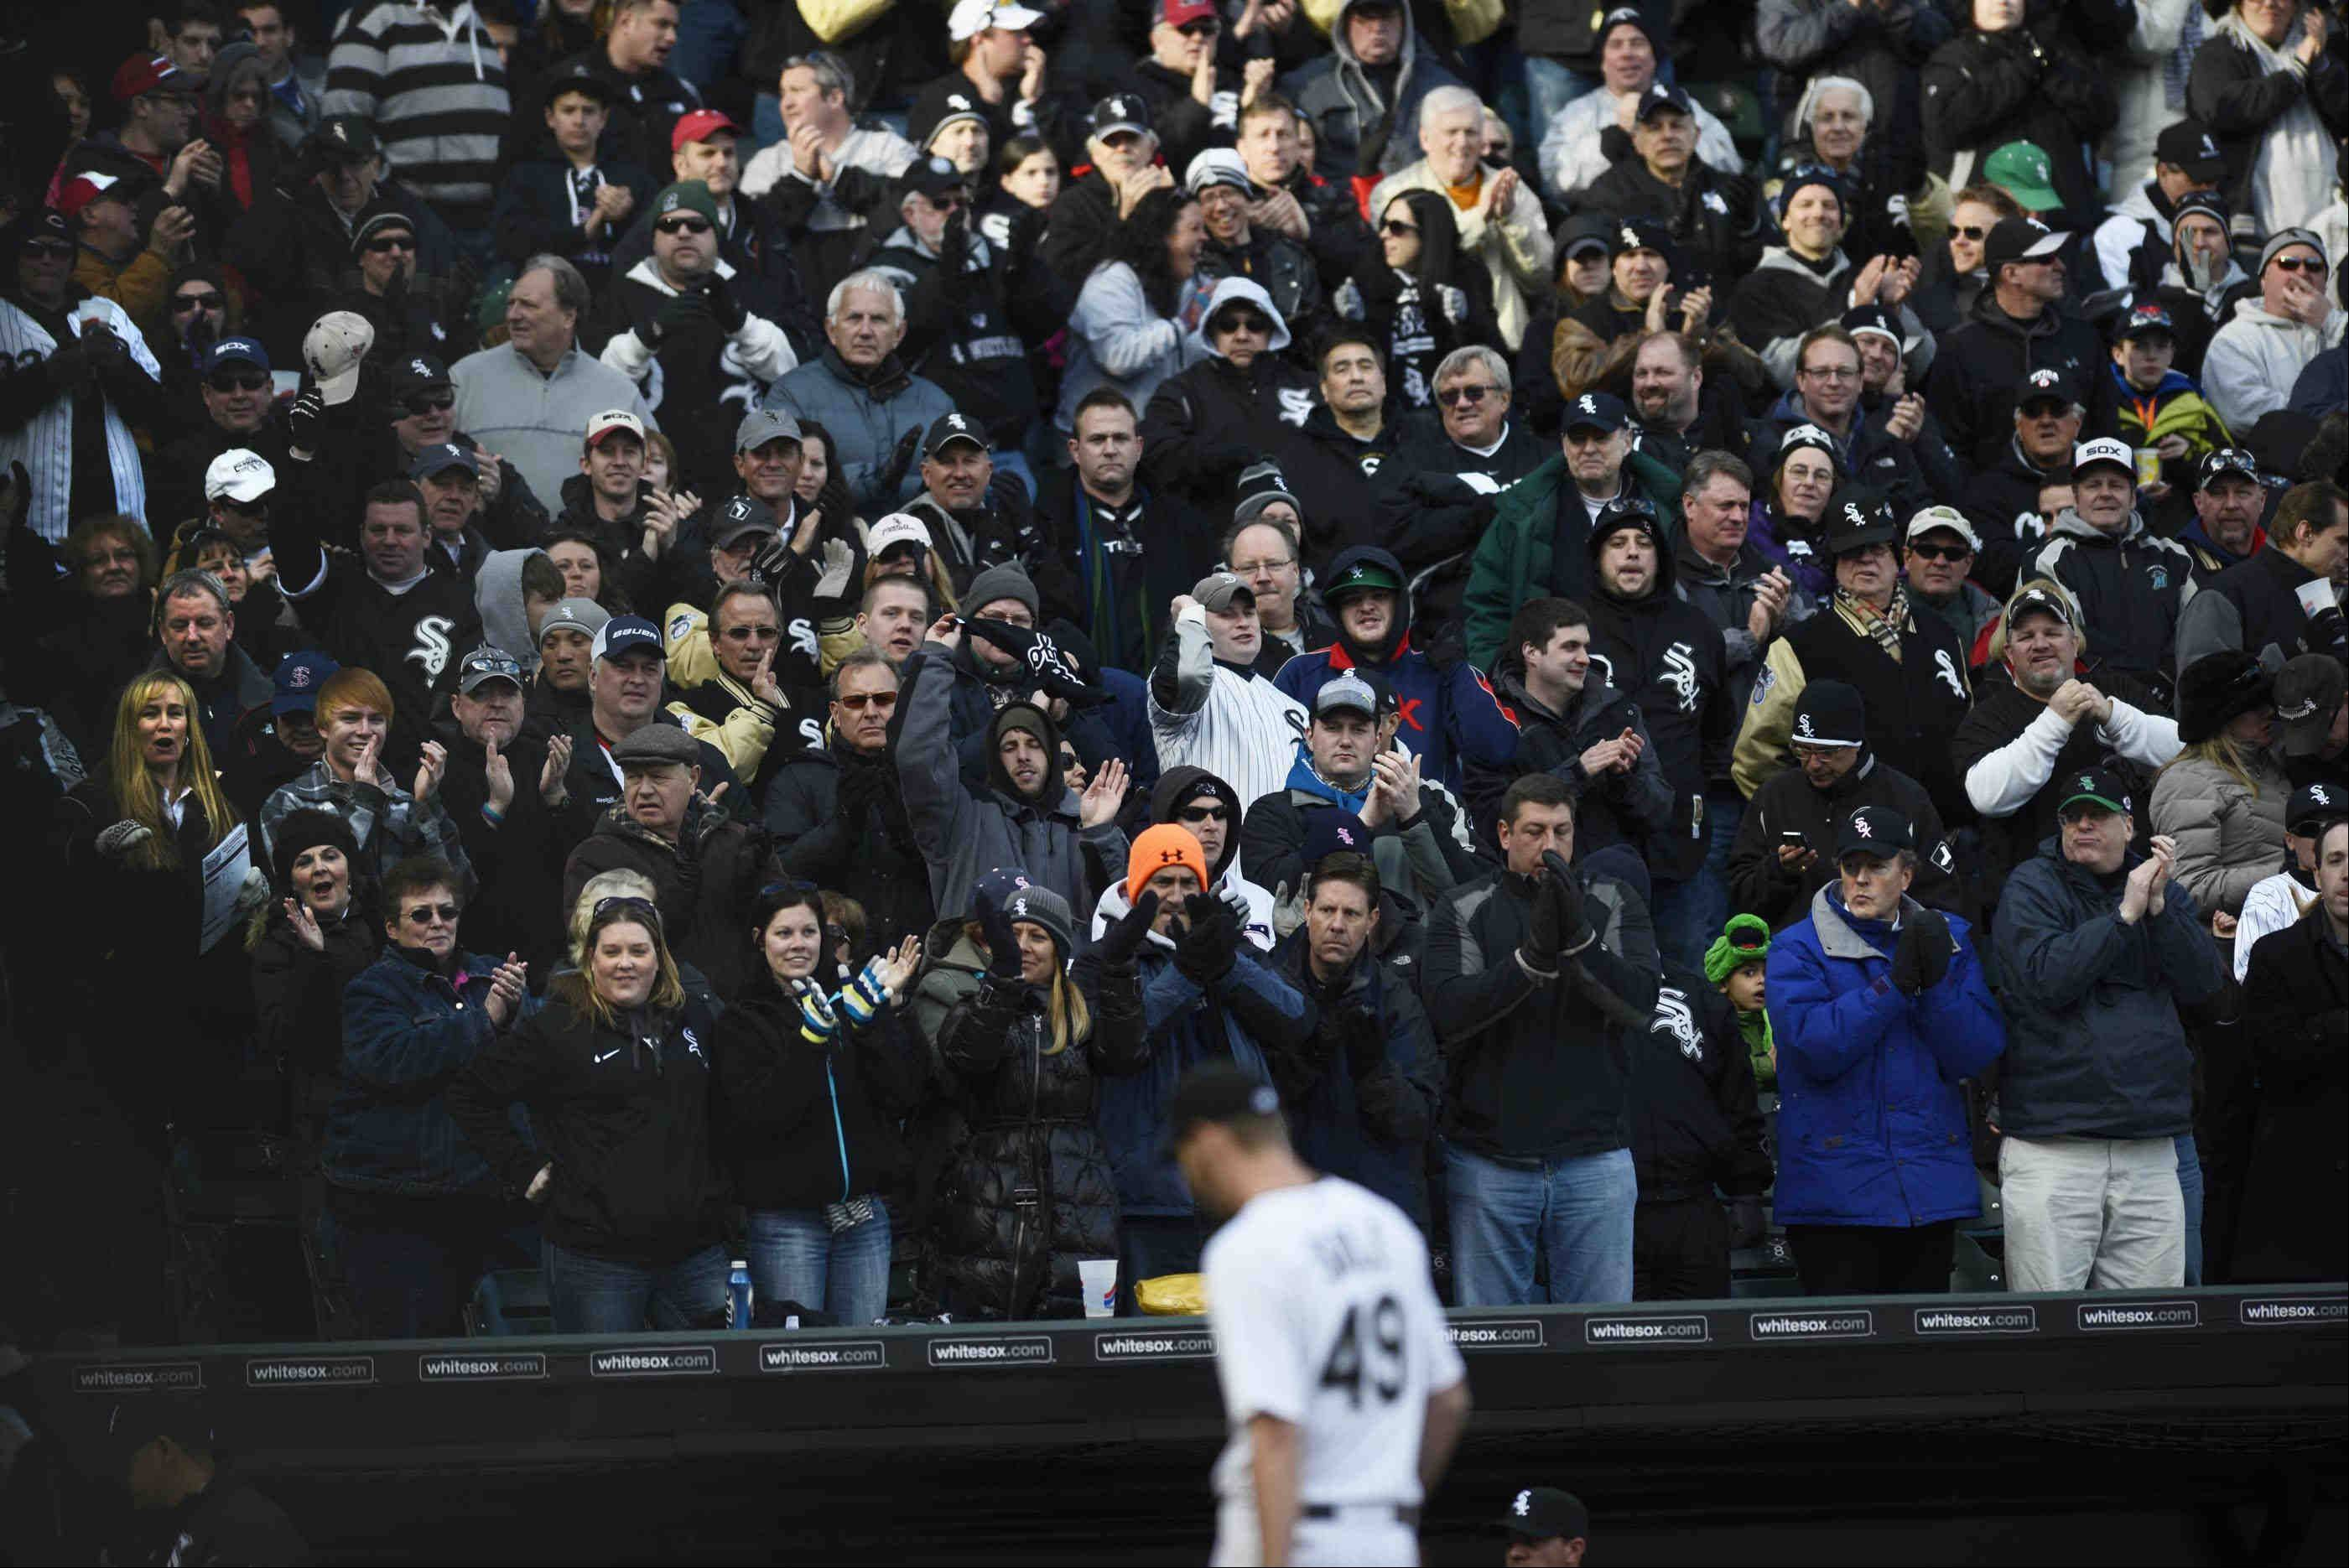 U.S. Cellular Field was packed with a sold-out crowd for Opening Day, but the crowds were much smaller throughout the rest of the homestand.